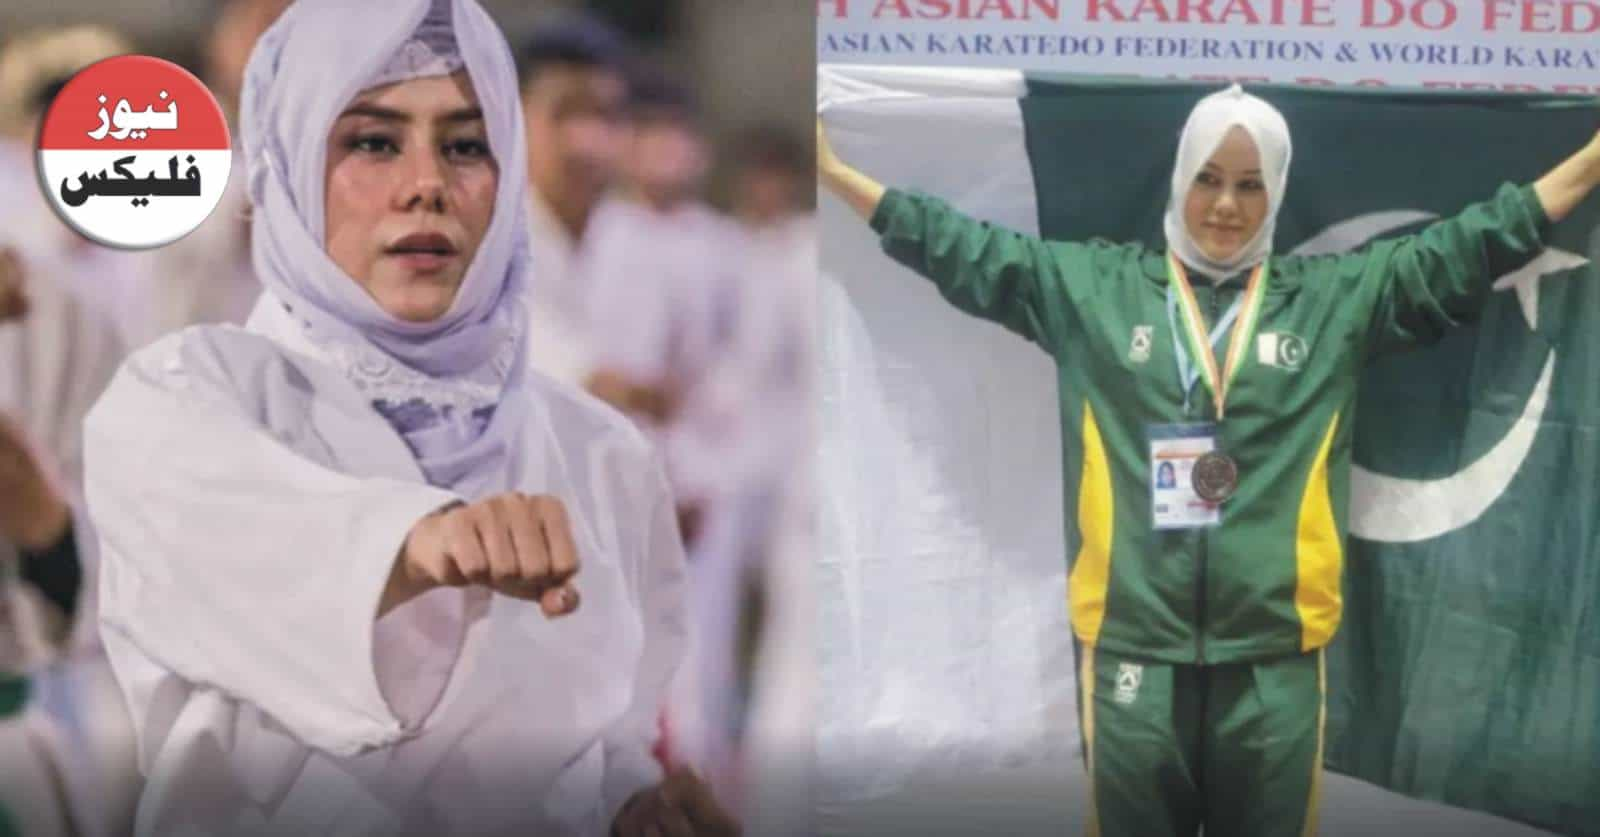 Meet Kulsoom Hazara – Pakistan's Female Karate Star Who Received 'Icon Of The Nation' Award